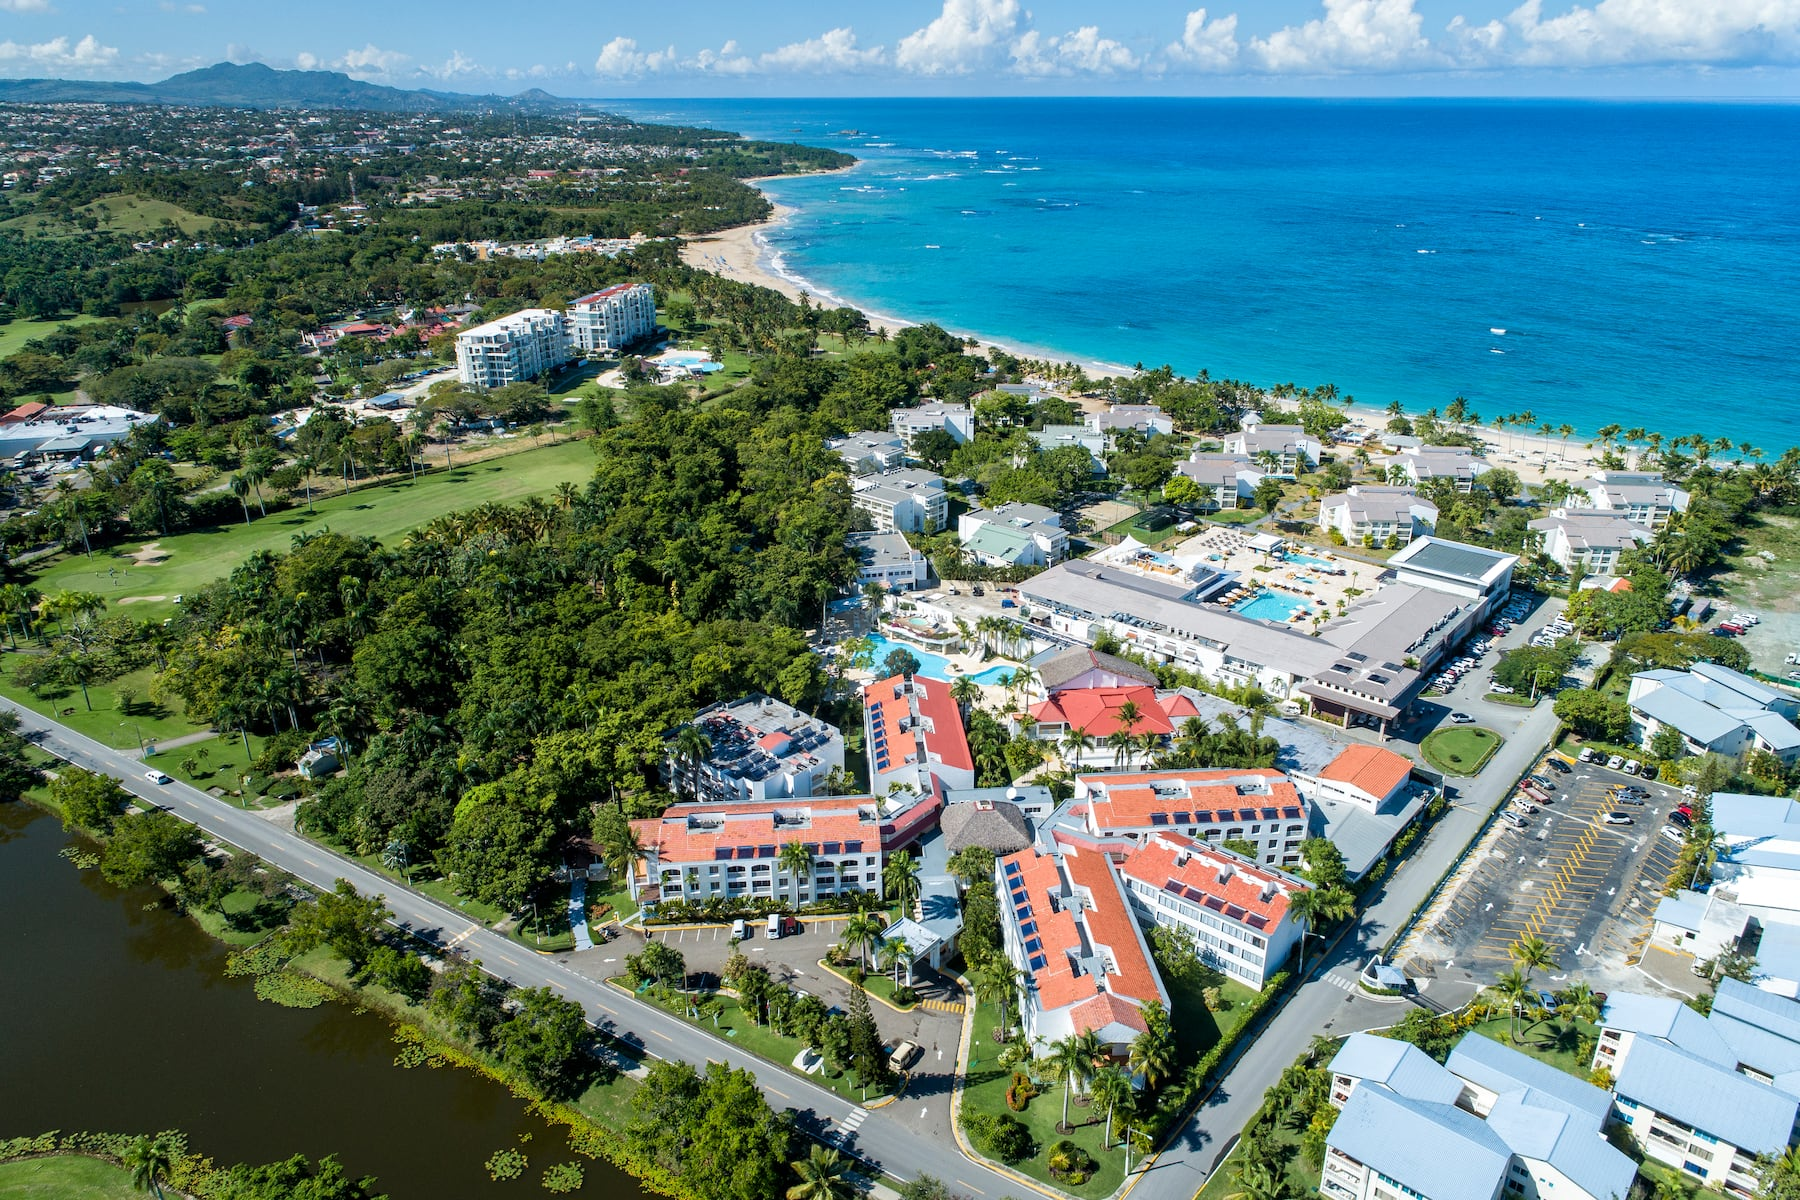 Viva Wyndham V Heavens All-Inclusive Resort, Adults Only - Puerto Plata, Dominican Republic